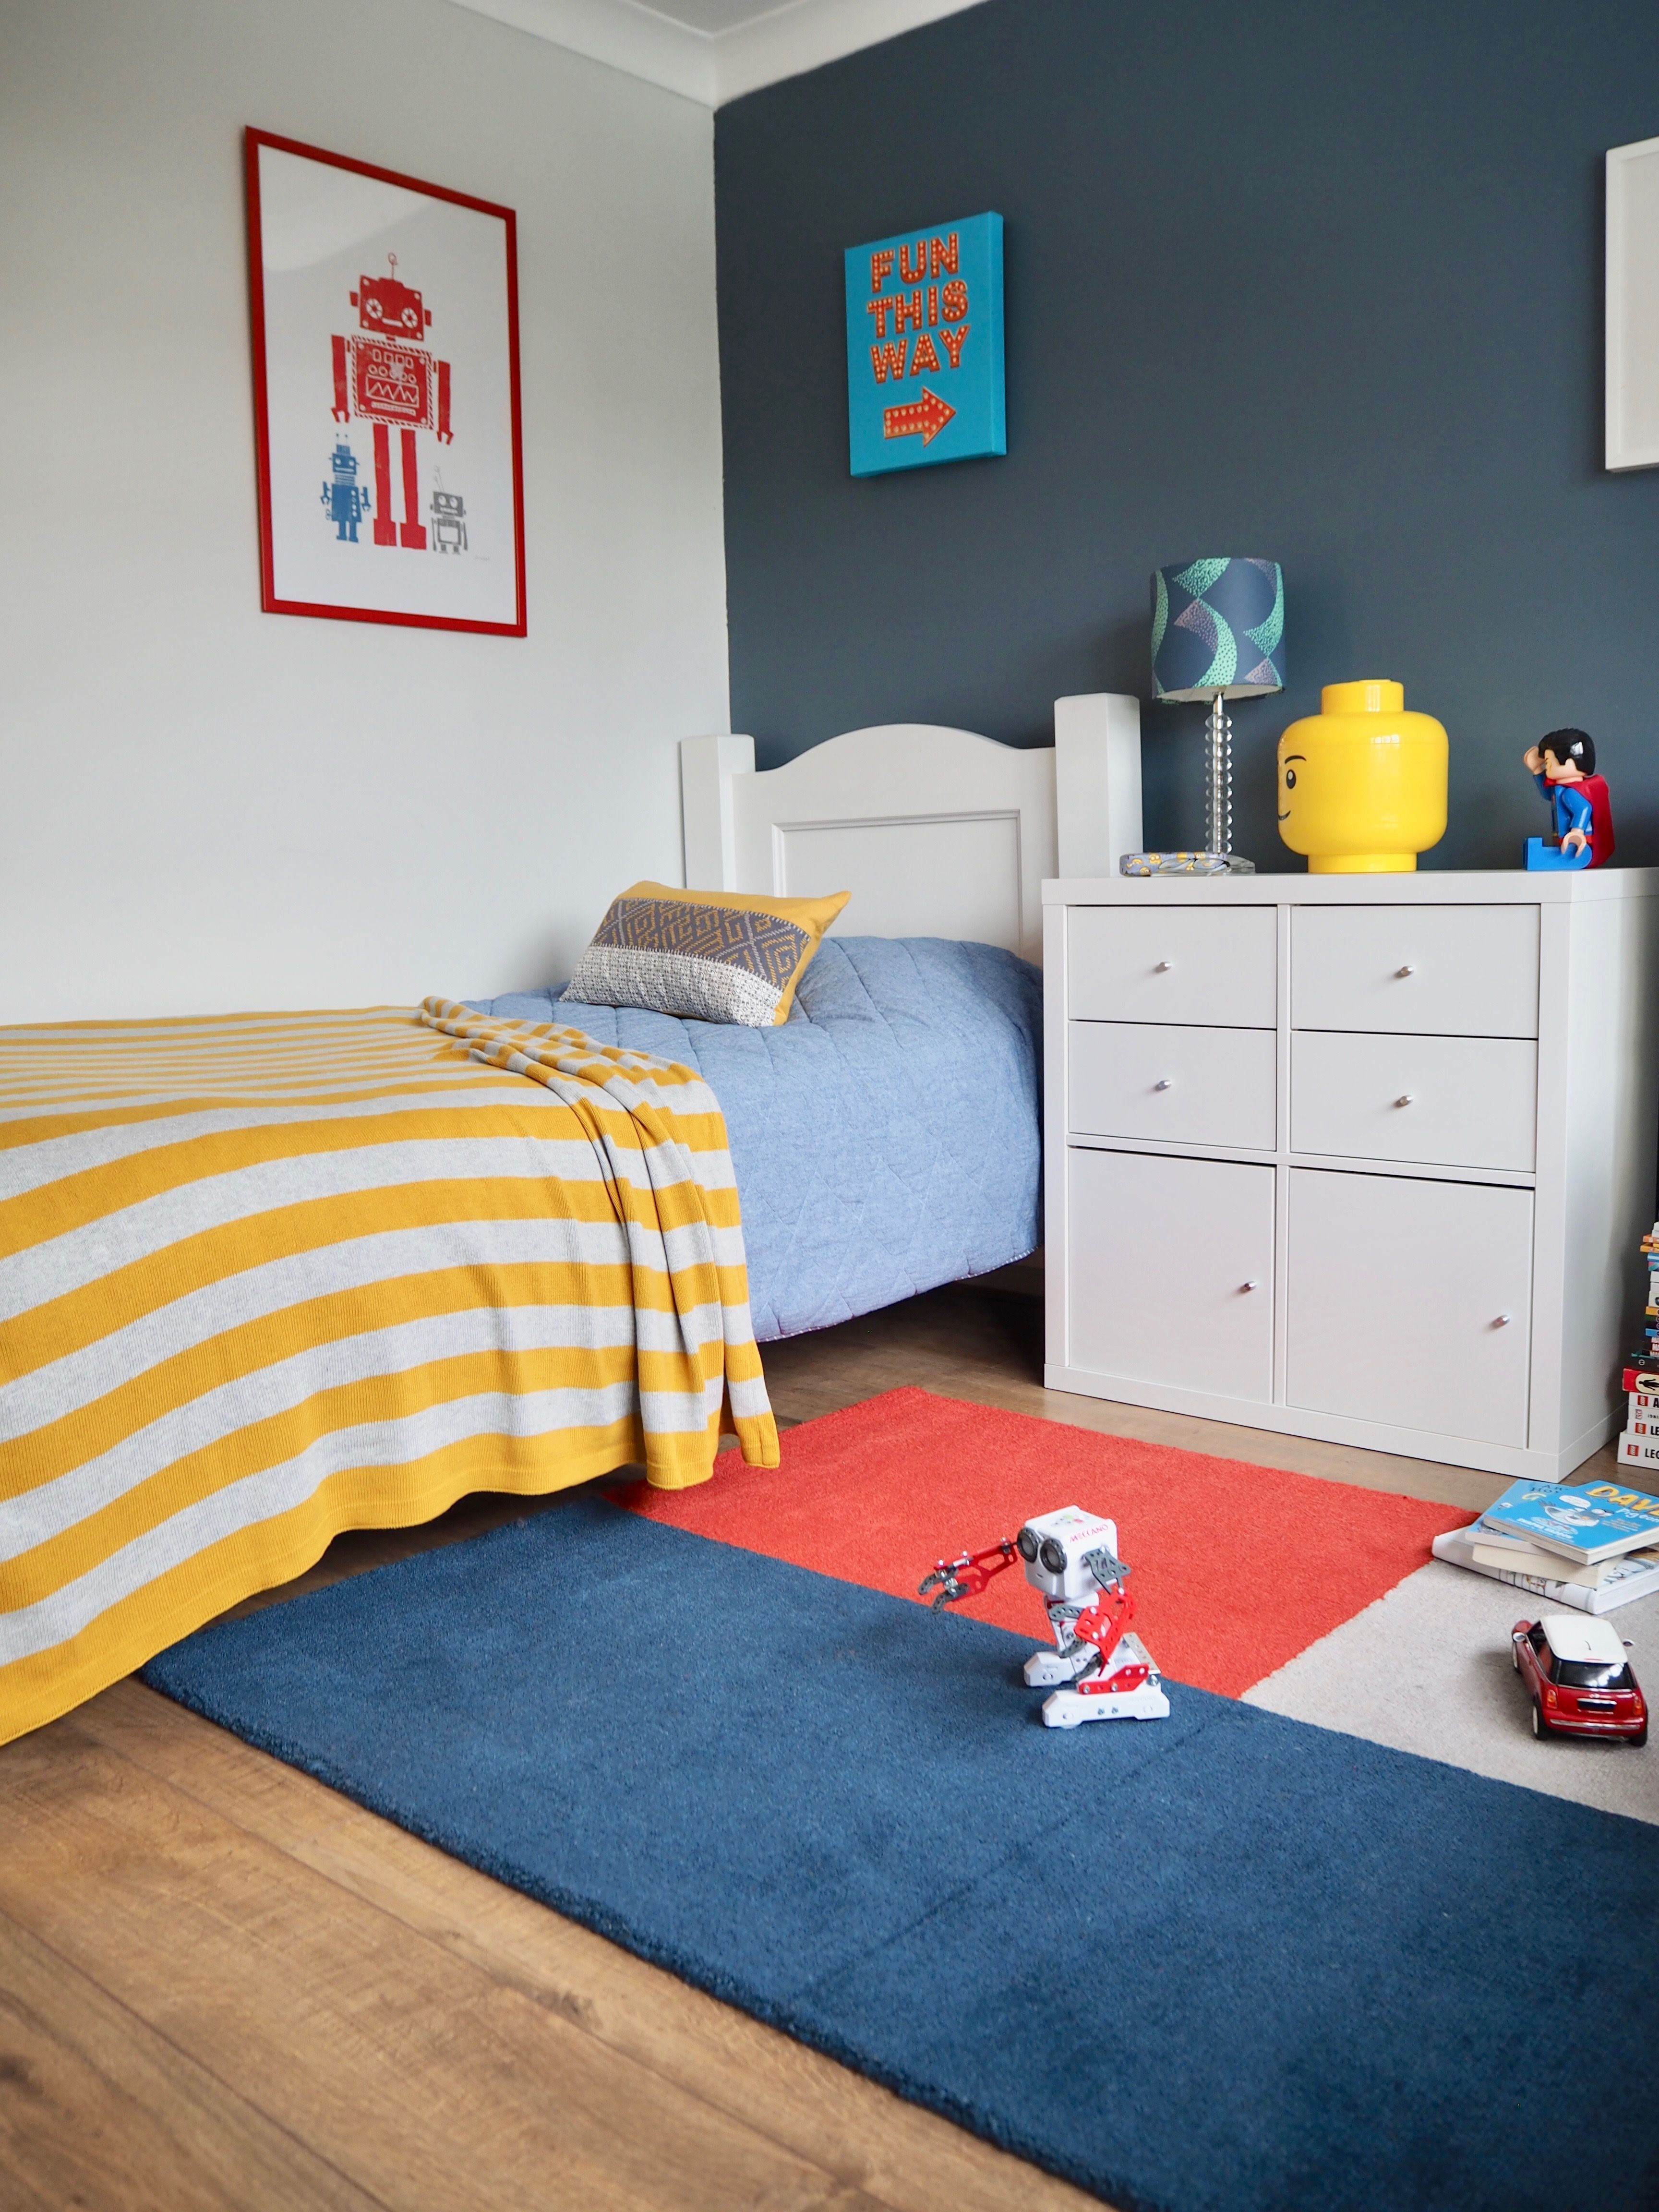 Kids Room Makeover In Blue And Red In 2020 Red Kids Rooms Red Accent Wall Bedroom Kid Room Decor